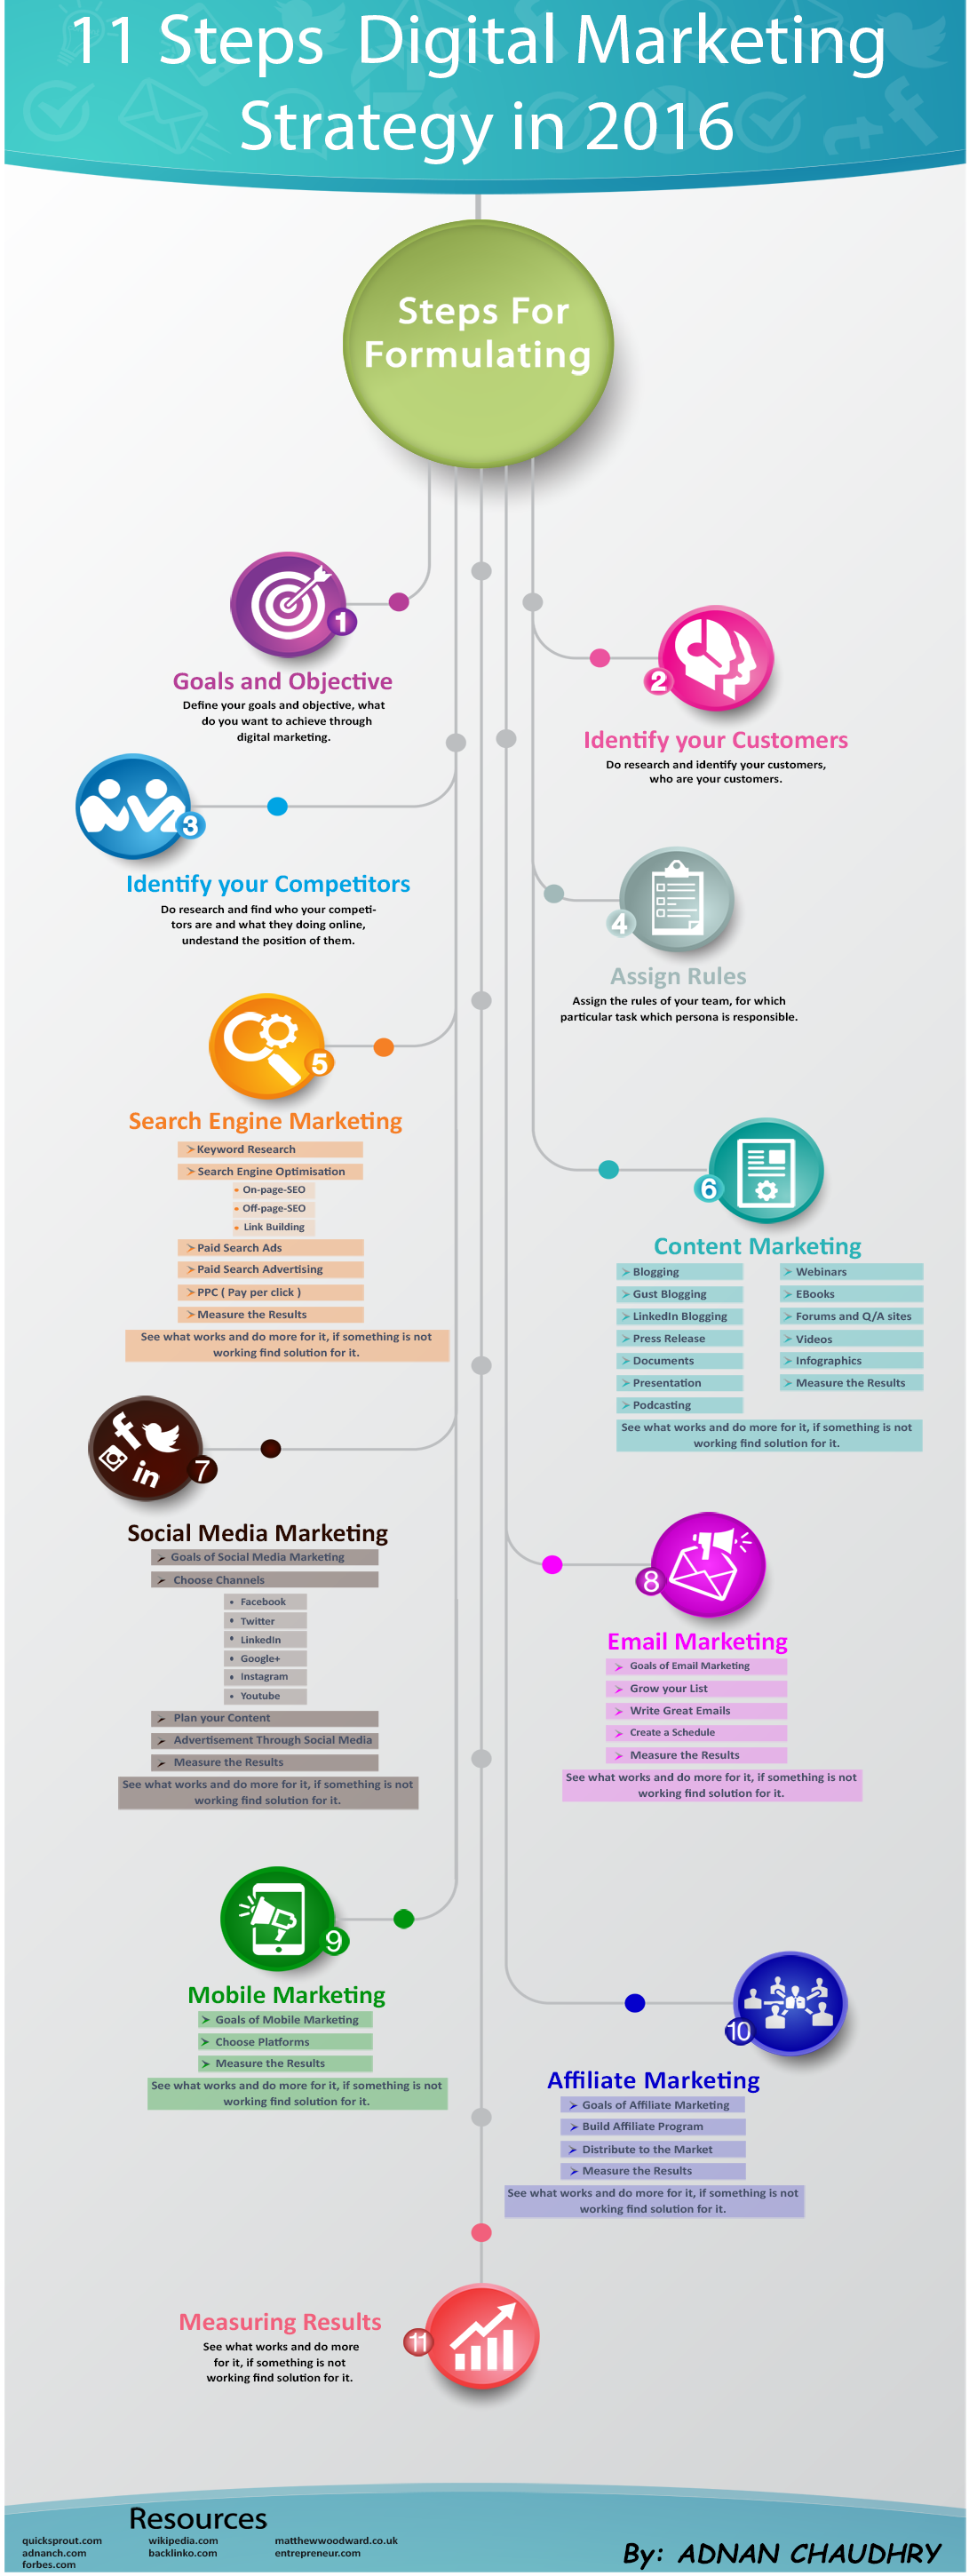 3 Reasons why Digital Marketing is Essential for B2B Companies [Infographic]